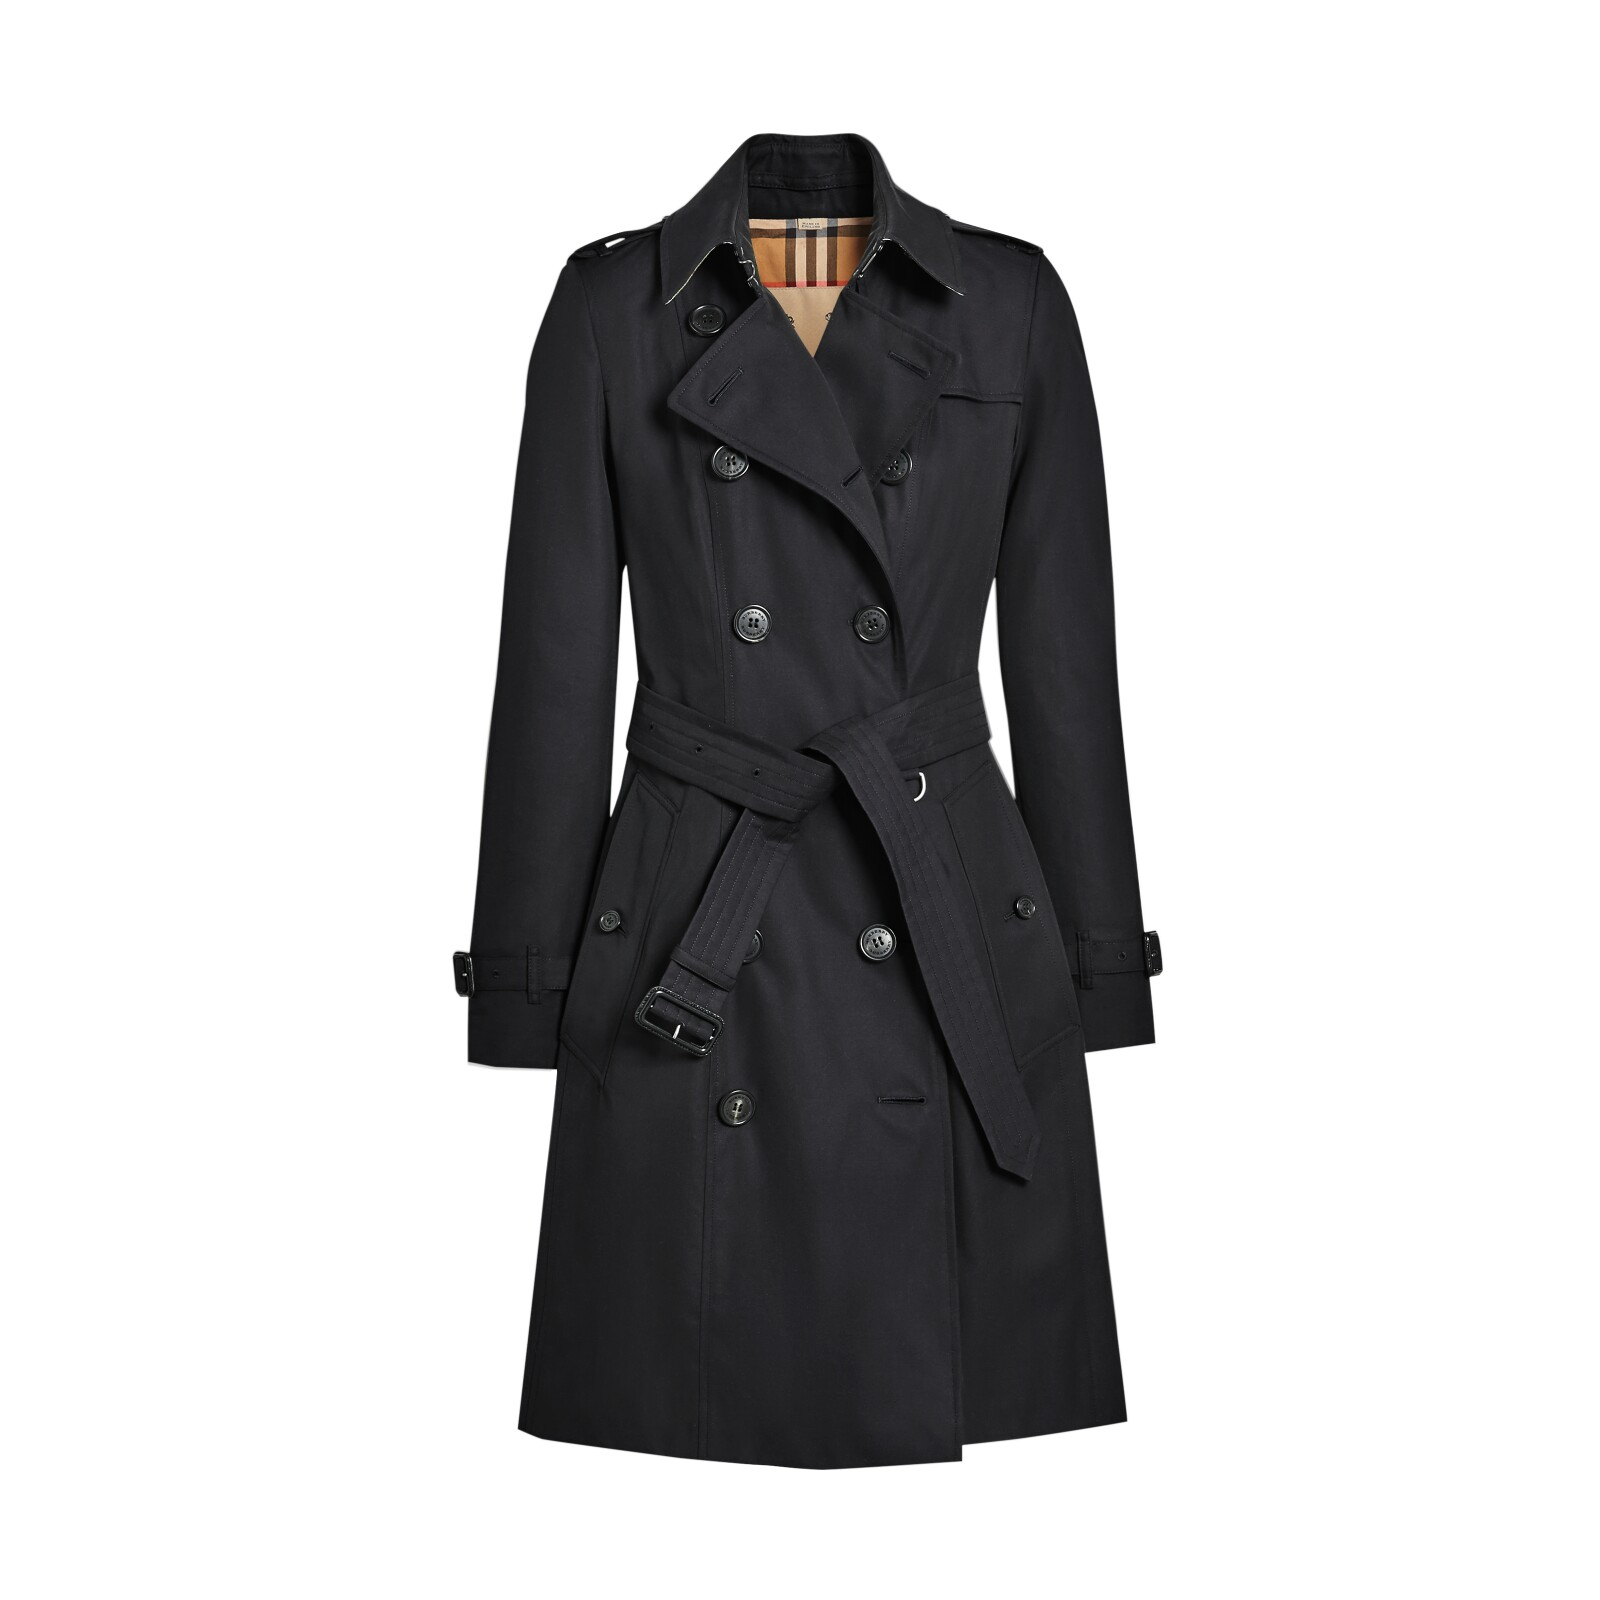 Burberry Heritage Womens Trench Coat_003.jpg